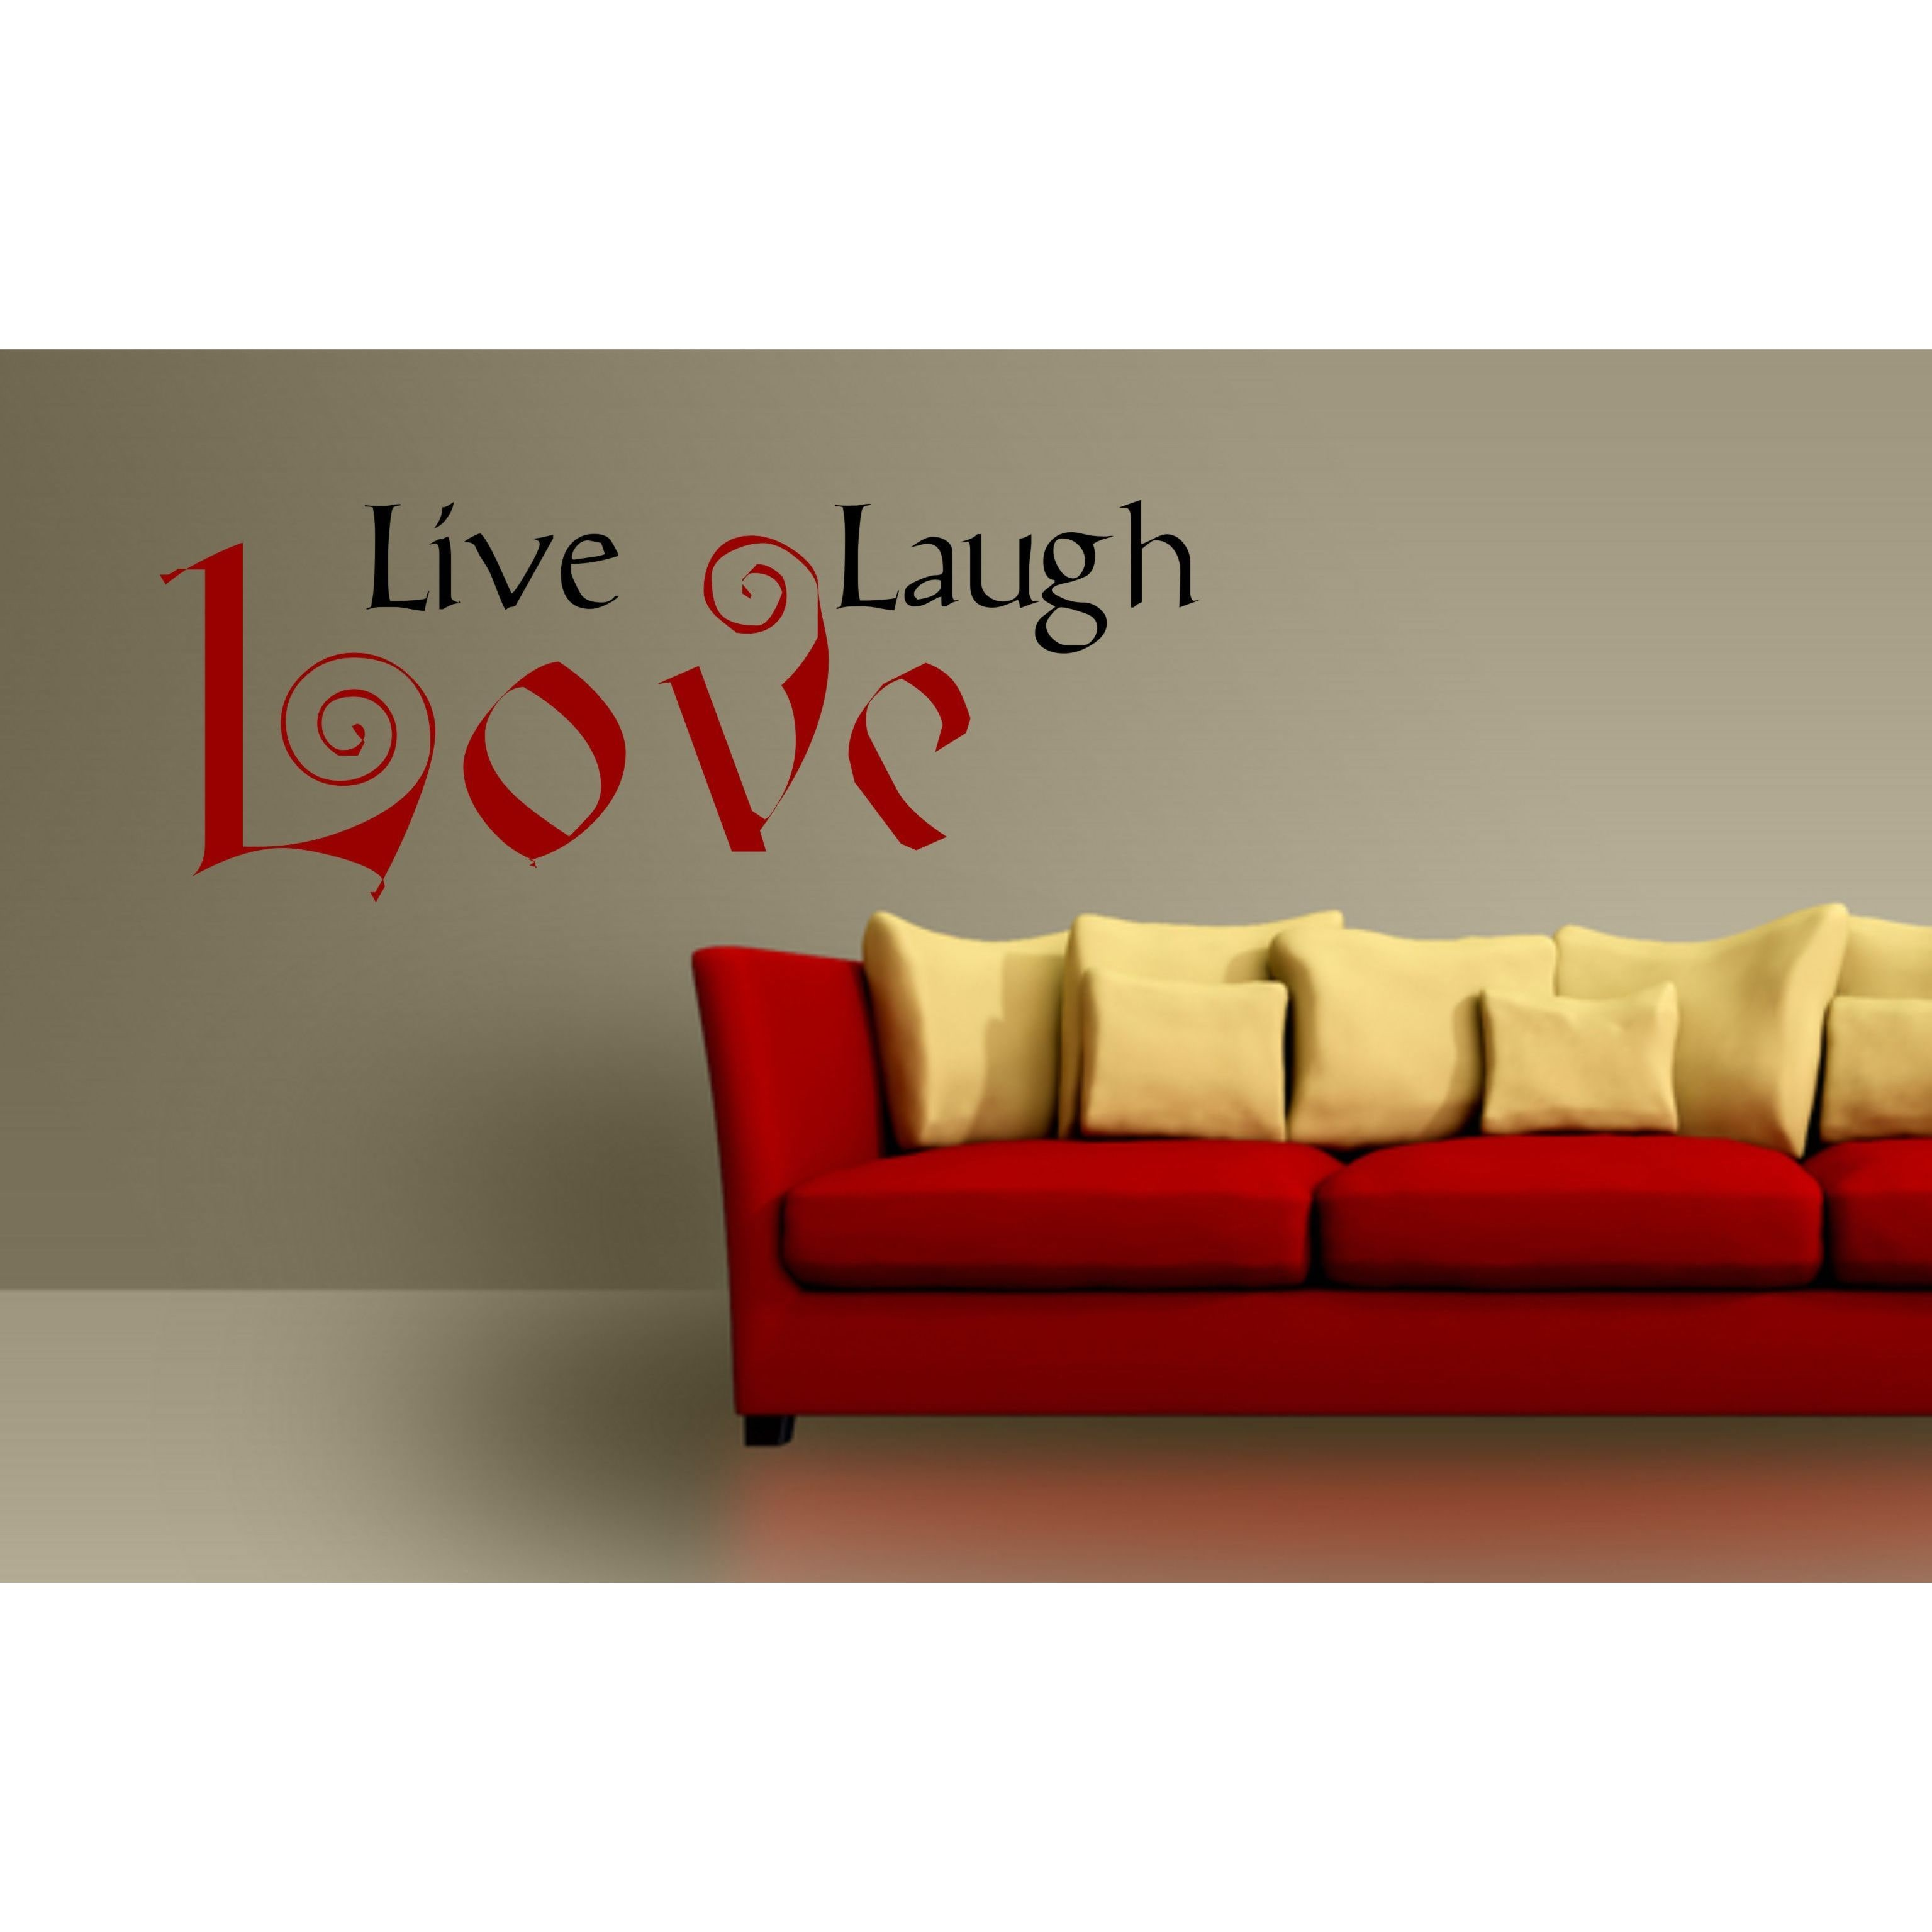 Everything Vinyl Decor Live Laugh Love Vinyl Wall Art